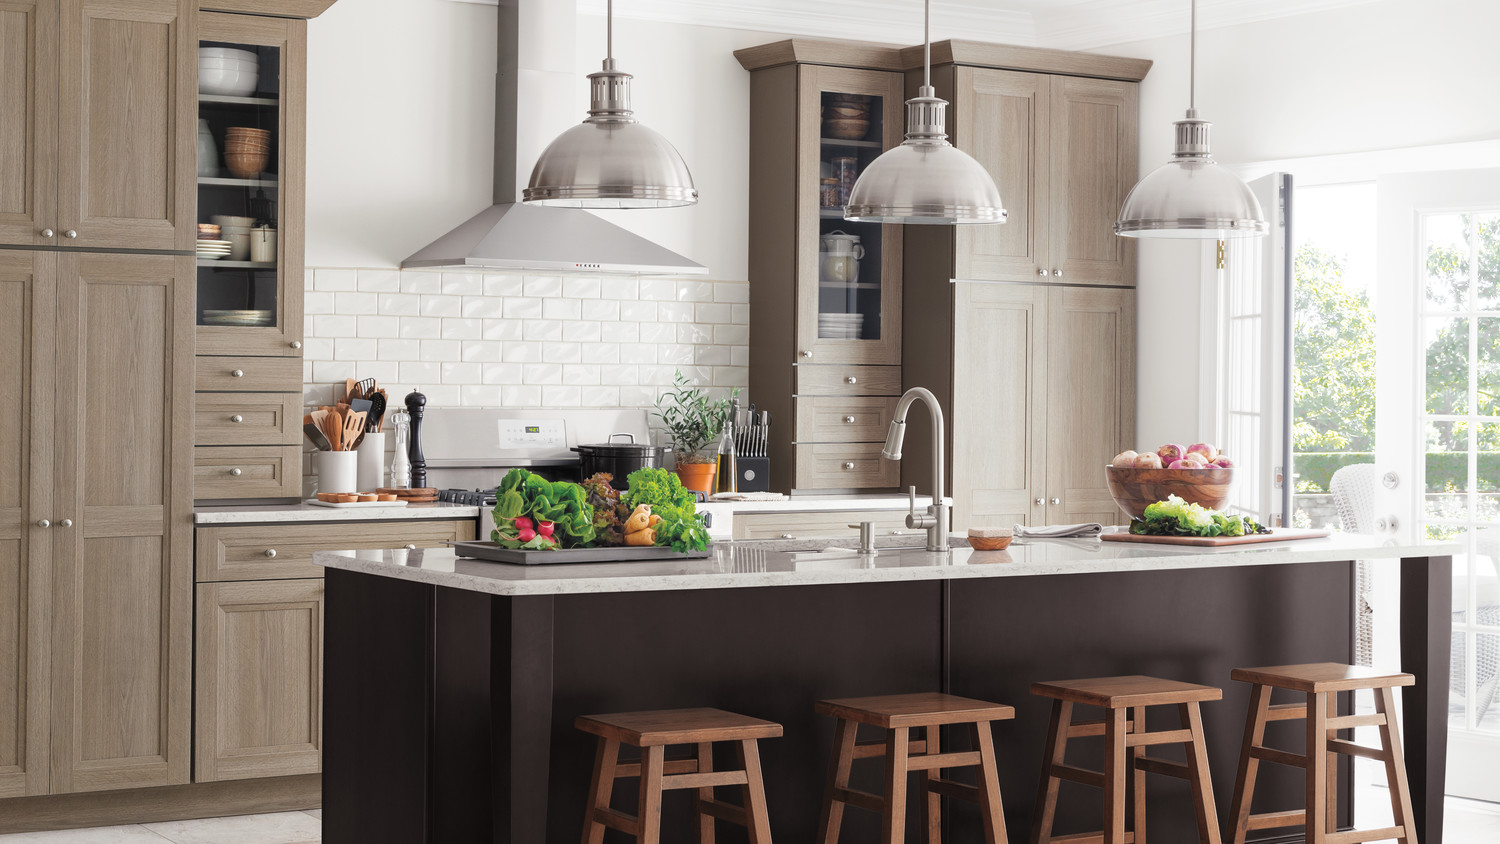 Video martha stewart shares her kitchen design for Kitchen decor inspiration